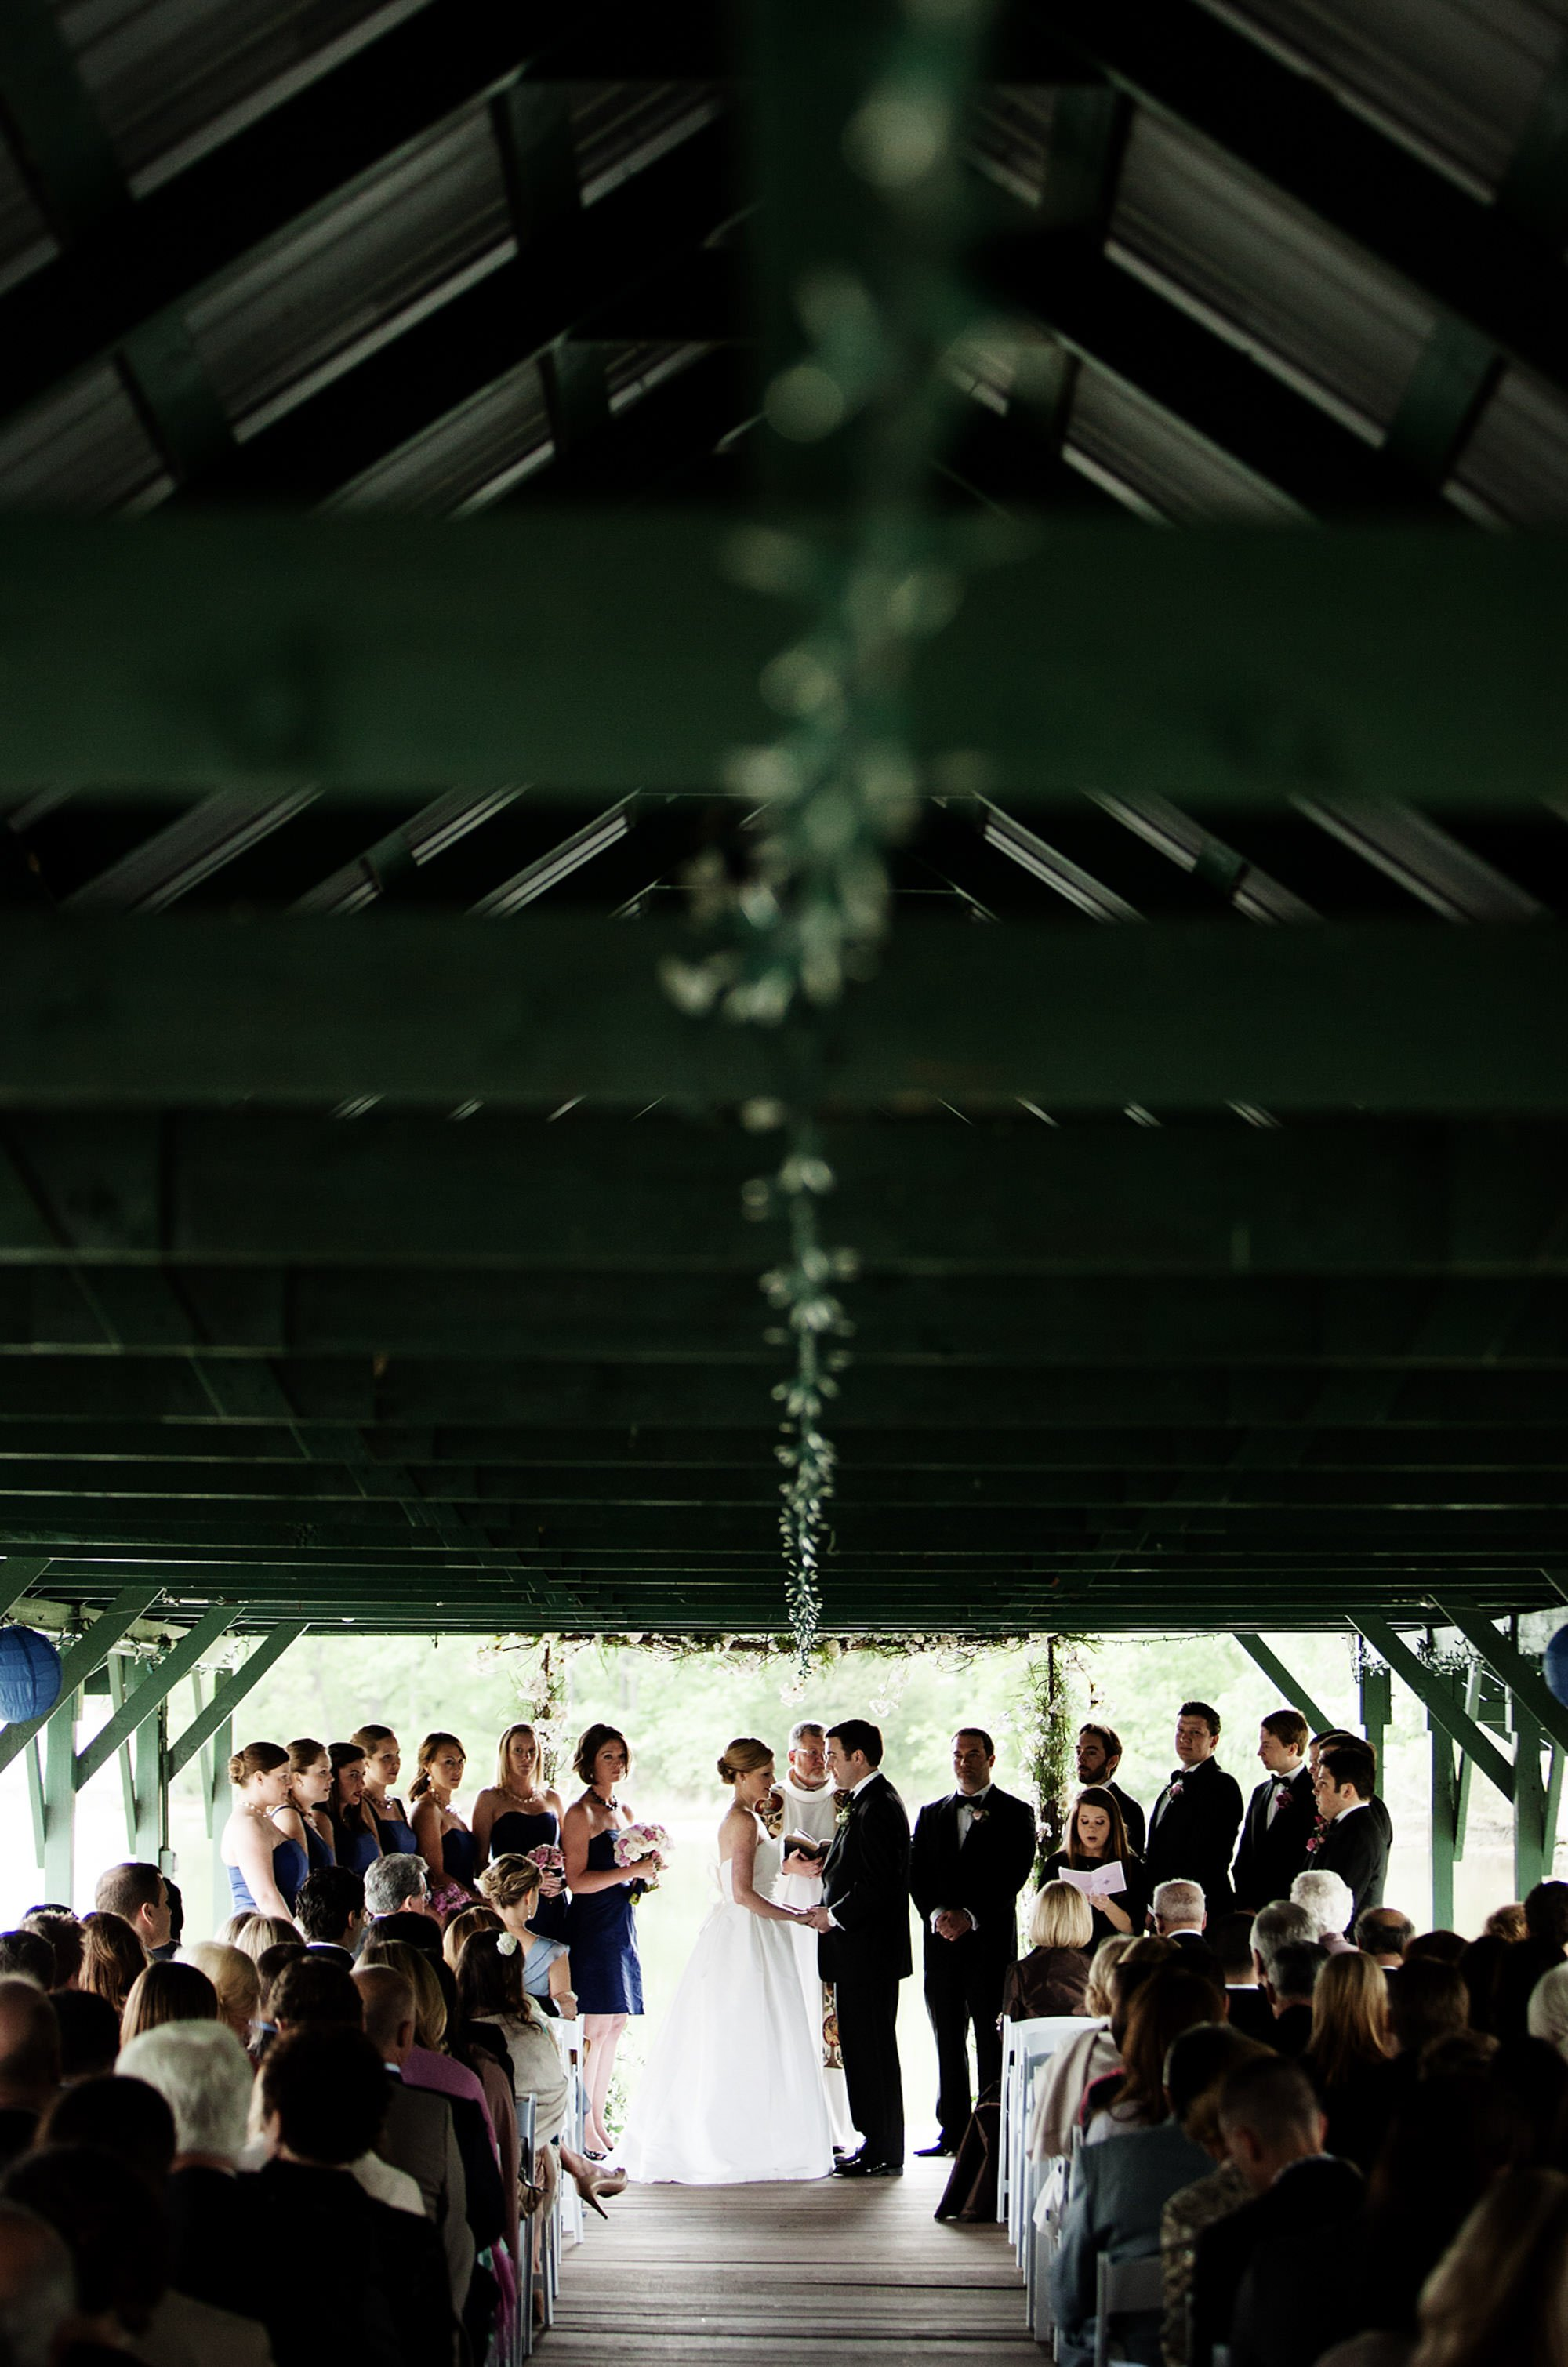 The wedding ceremony at Oaks Waterfront Inn and Events.